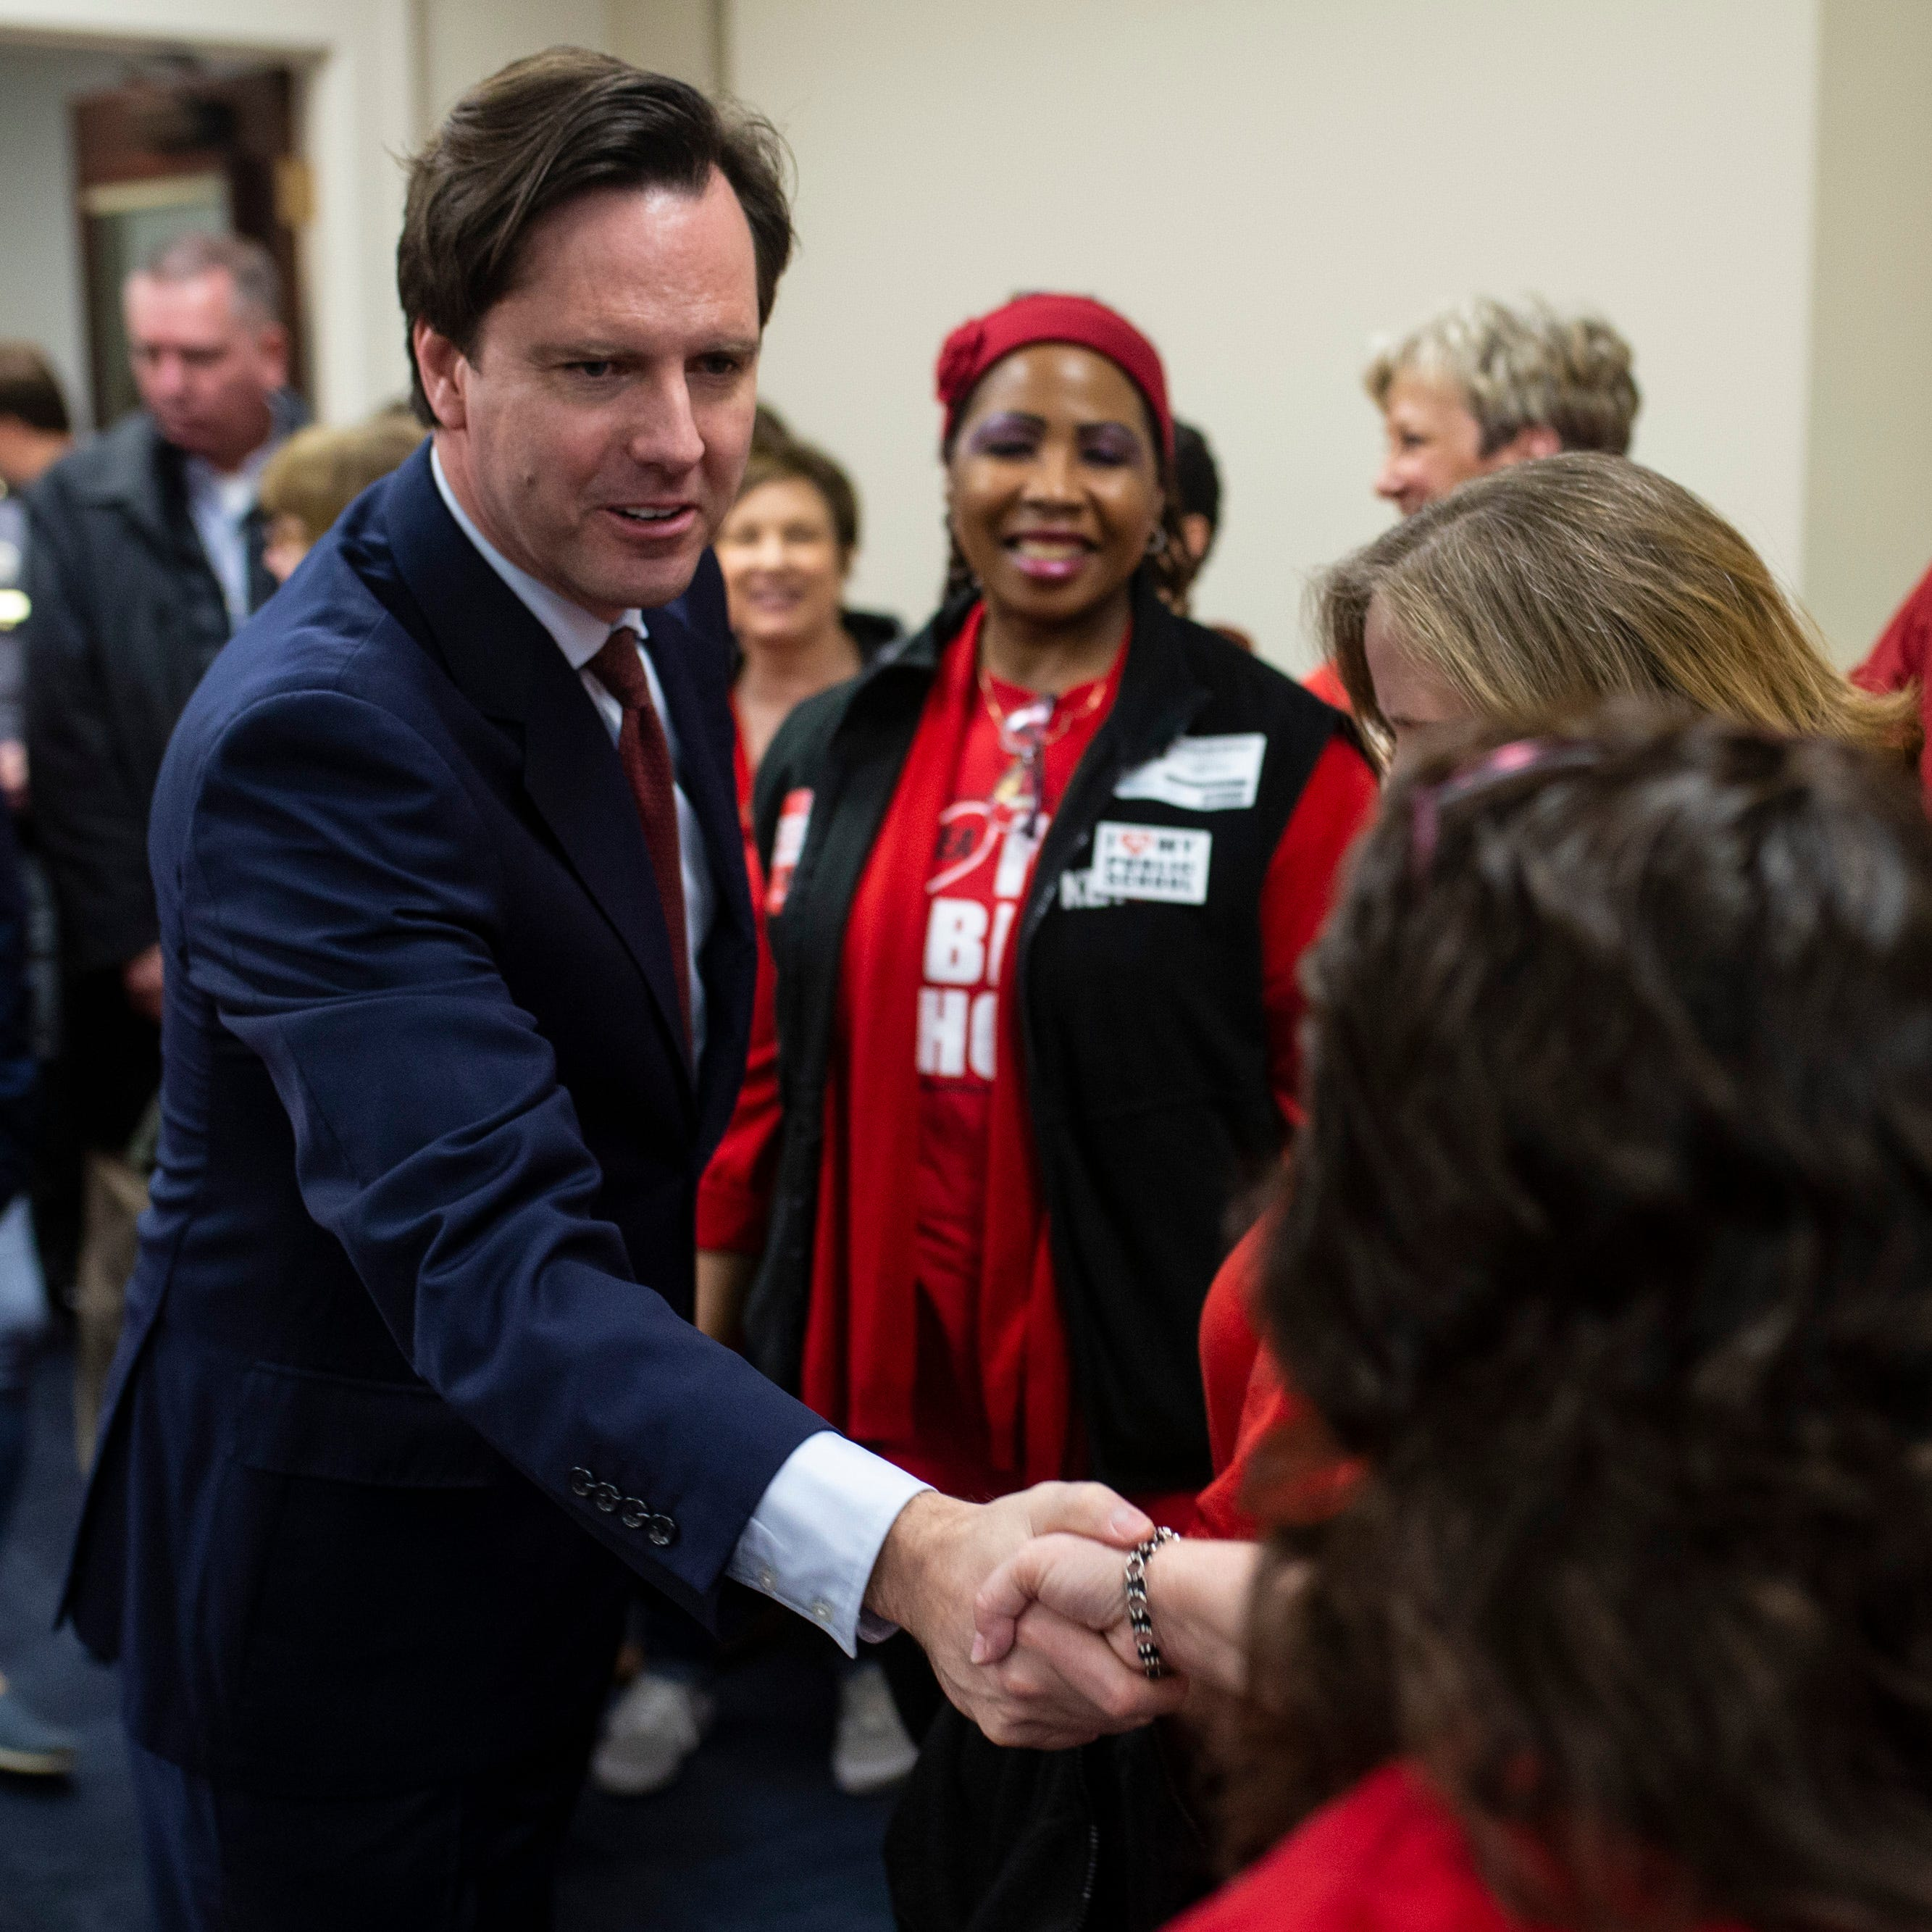 Adam Edelen gets Louisville teacher union nod, but where have other endorsements landed?